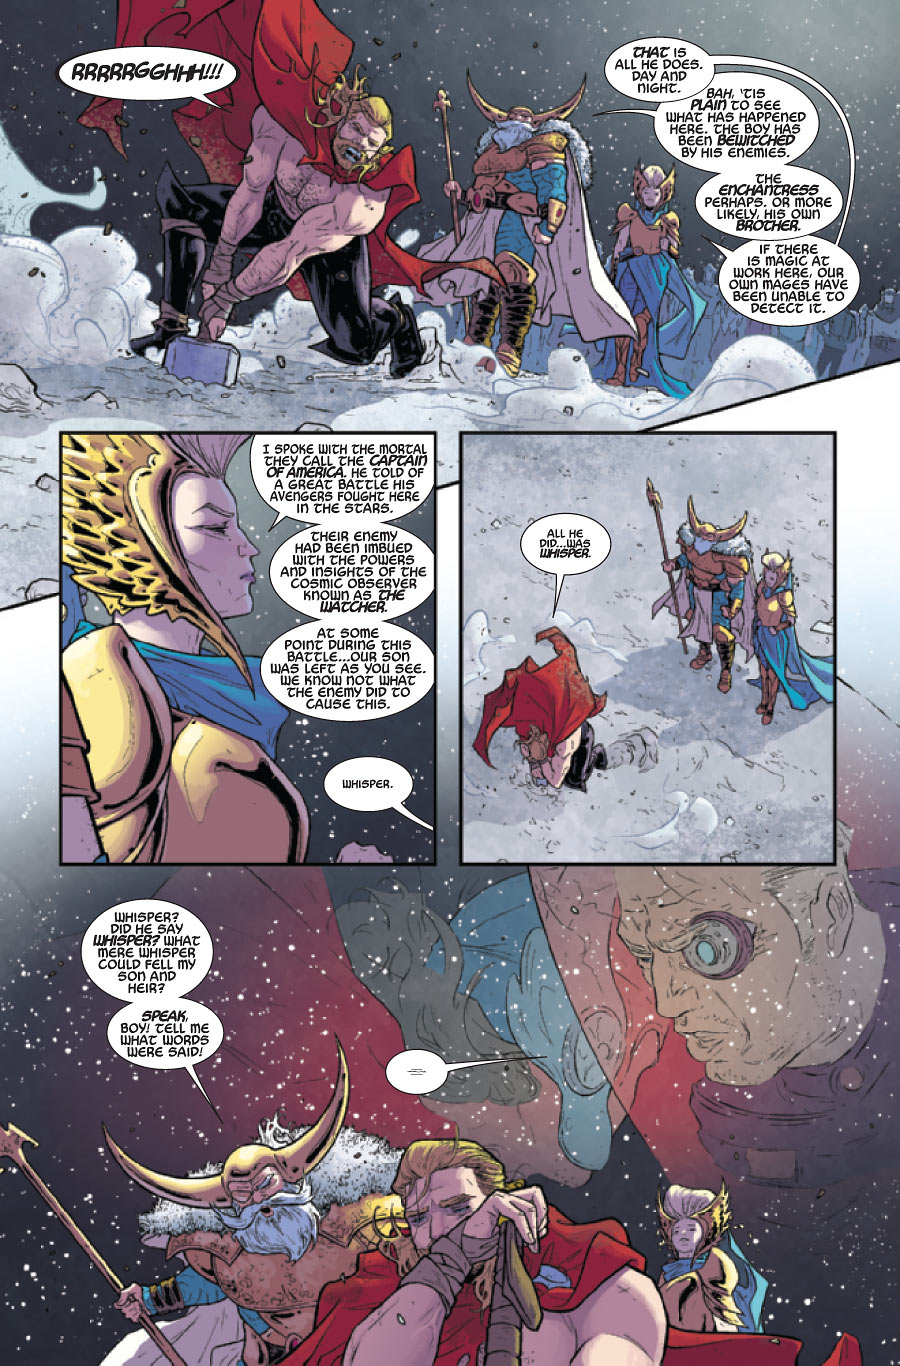 thor 1 by jason aaron russell dauterman review books